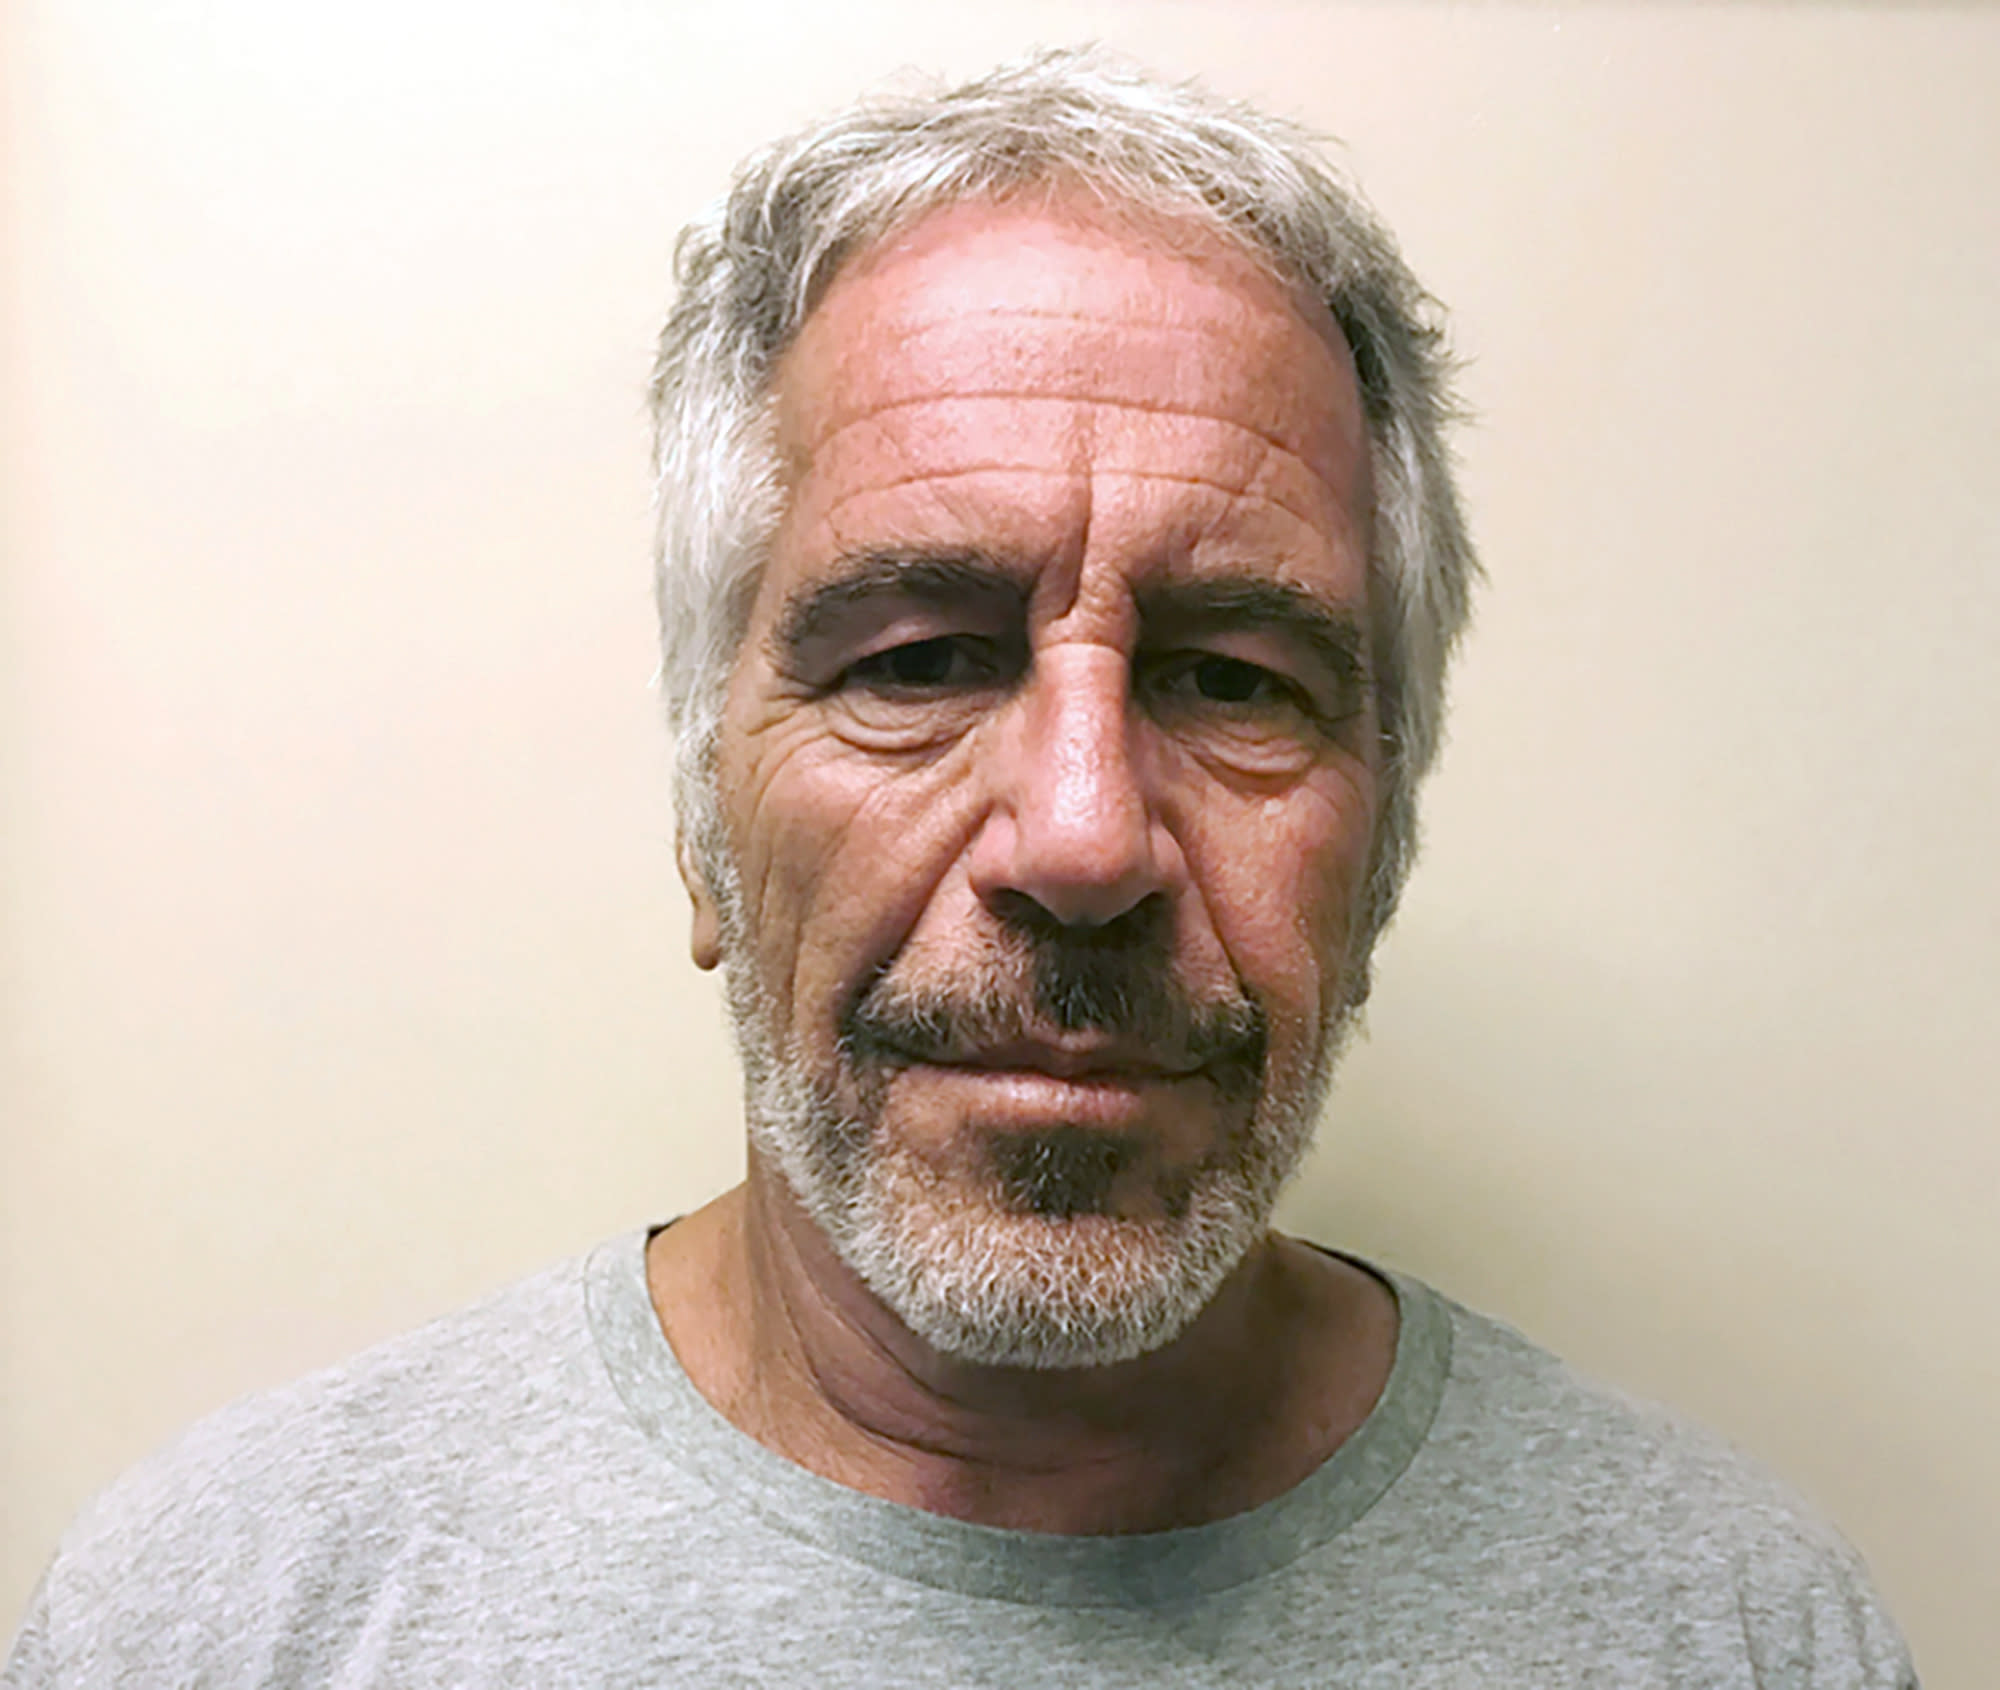 Federal prison guards in custody in connection with Jeffrey Epstein death